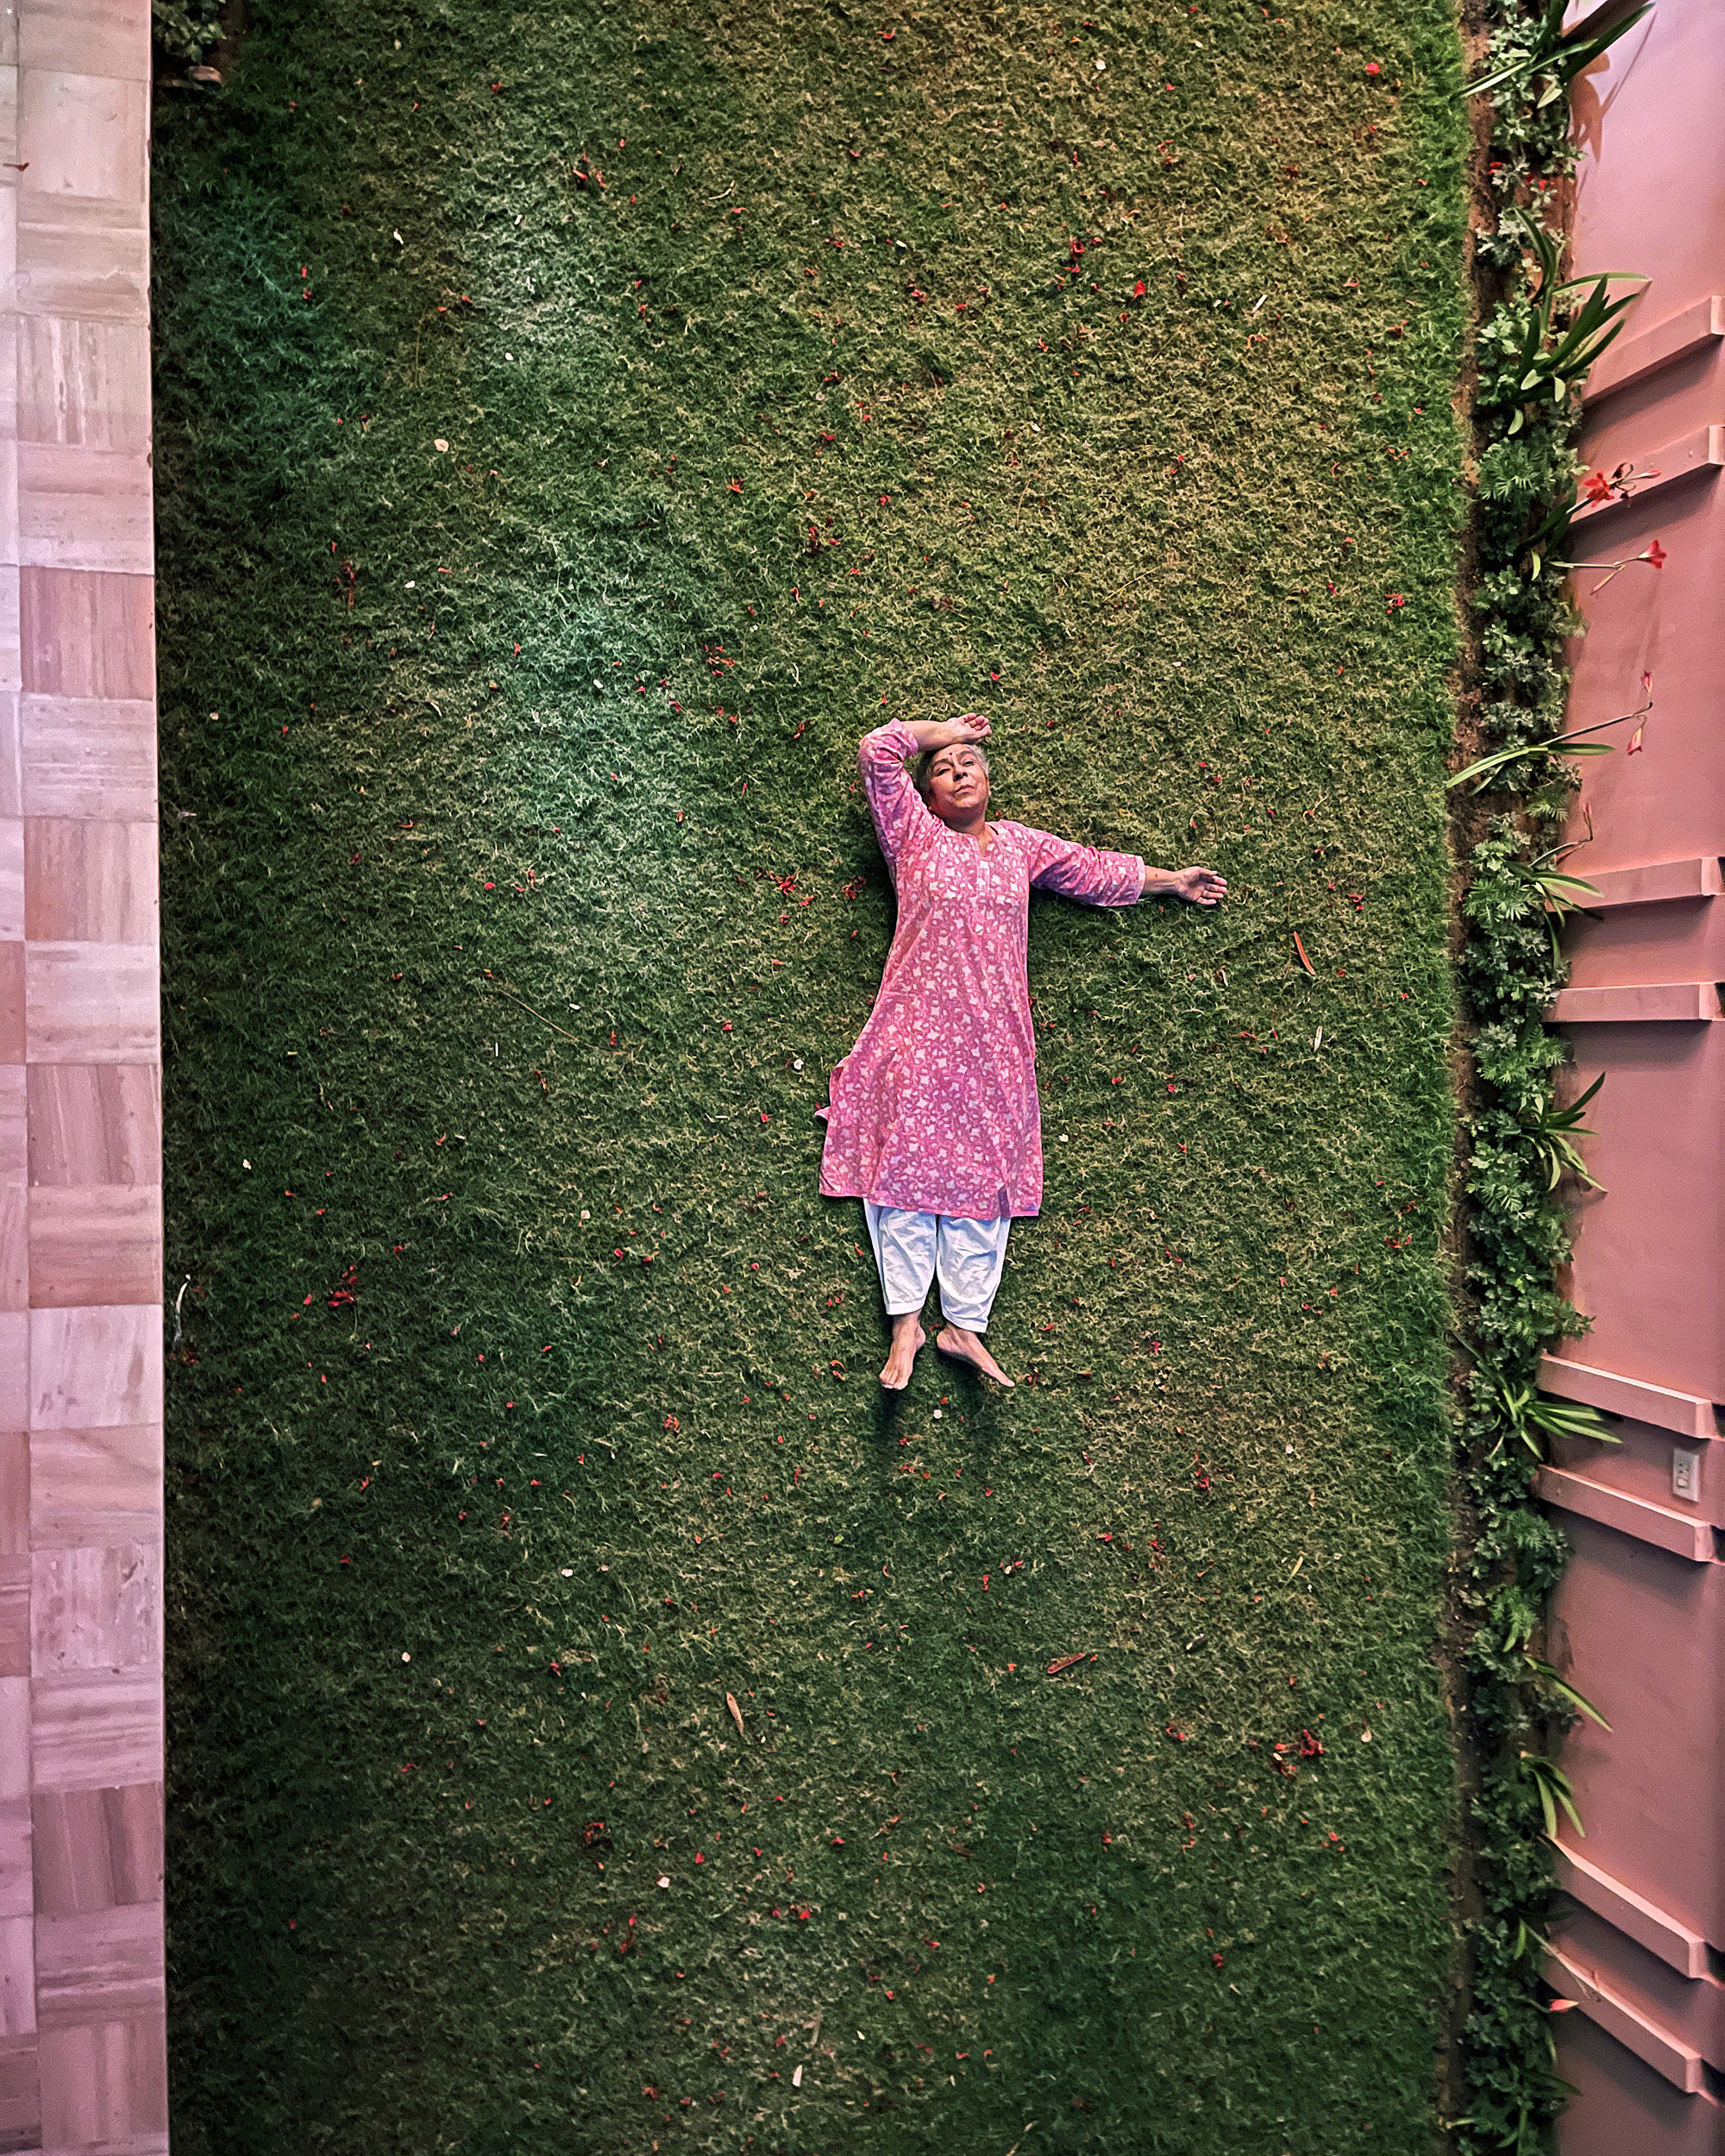 The photographer's mother lying down in the backyard, photographed from above